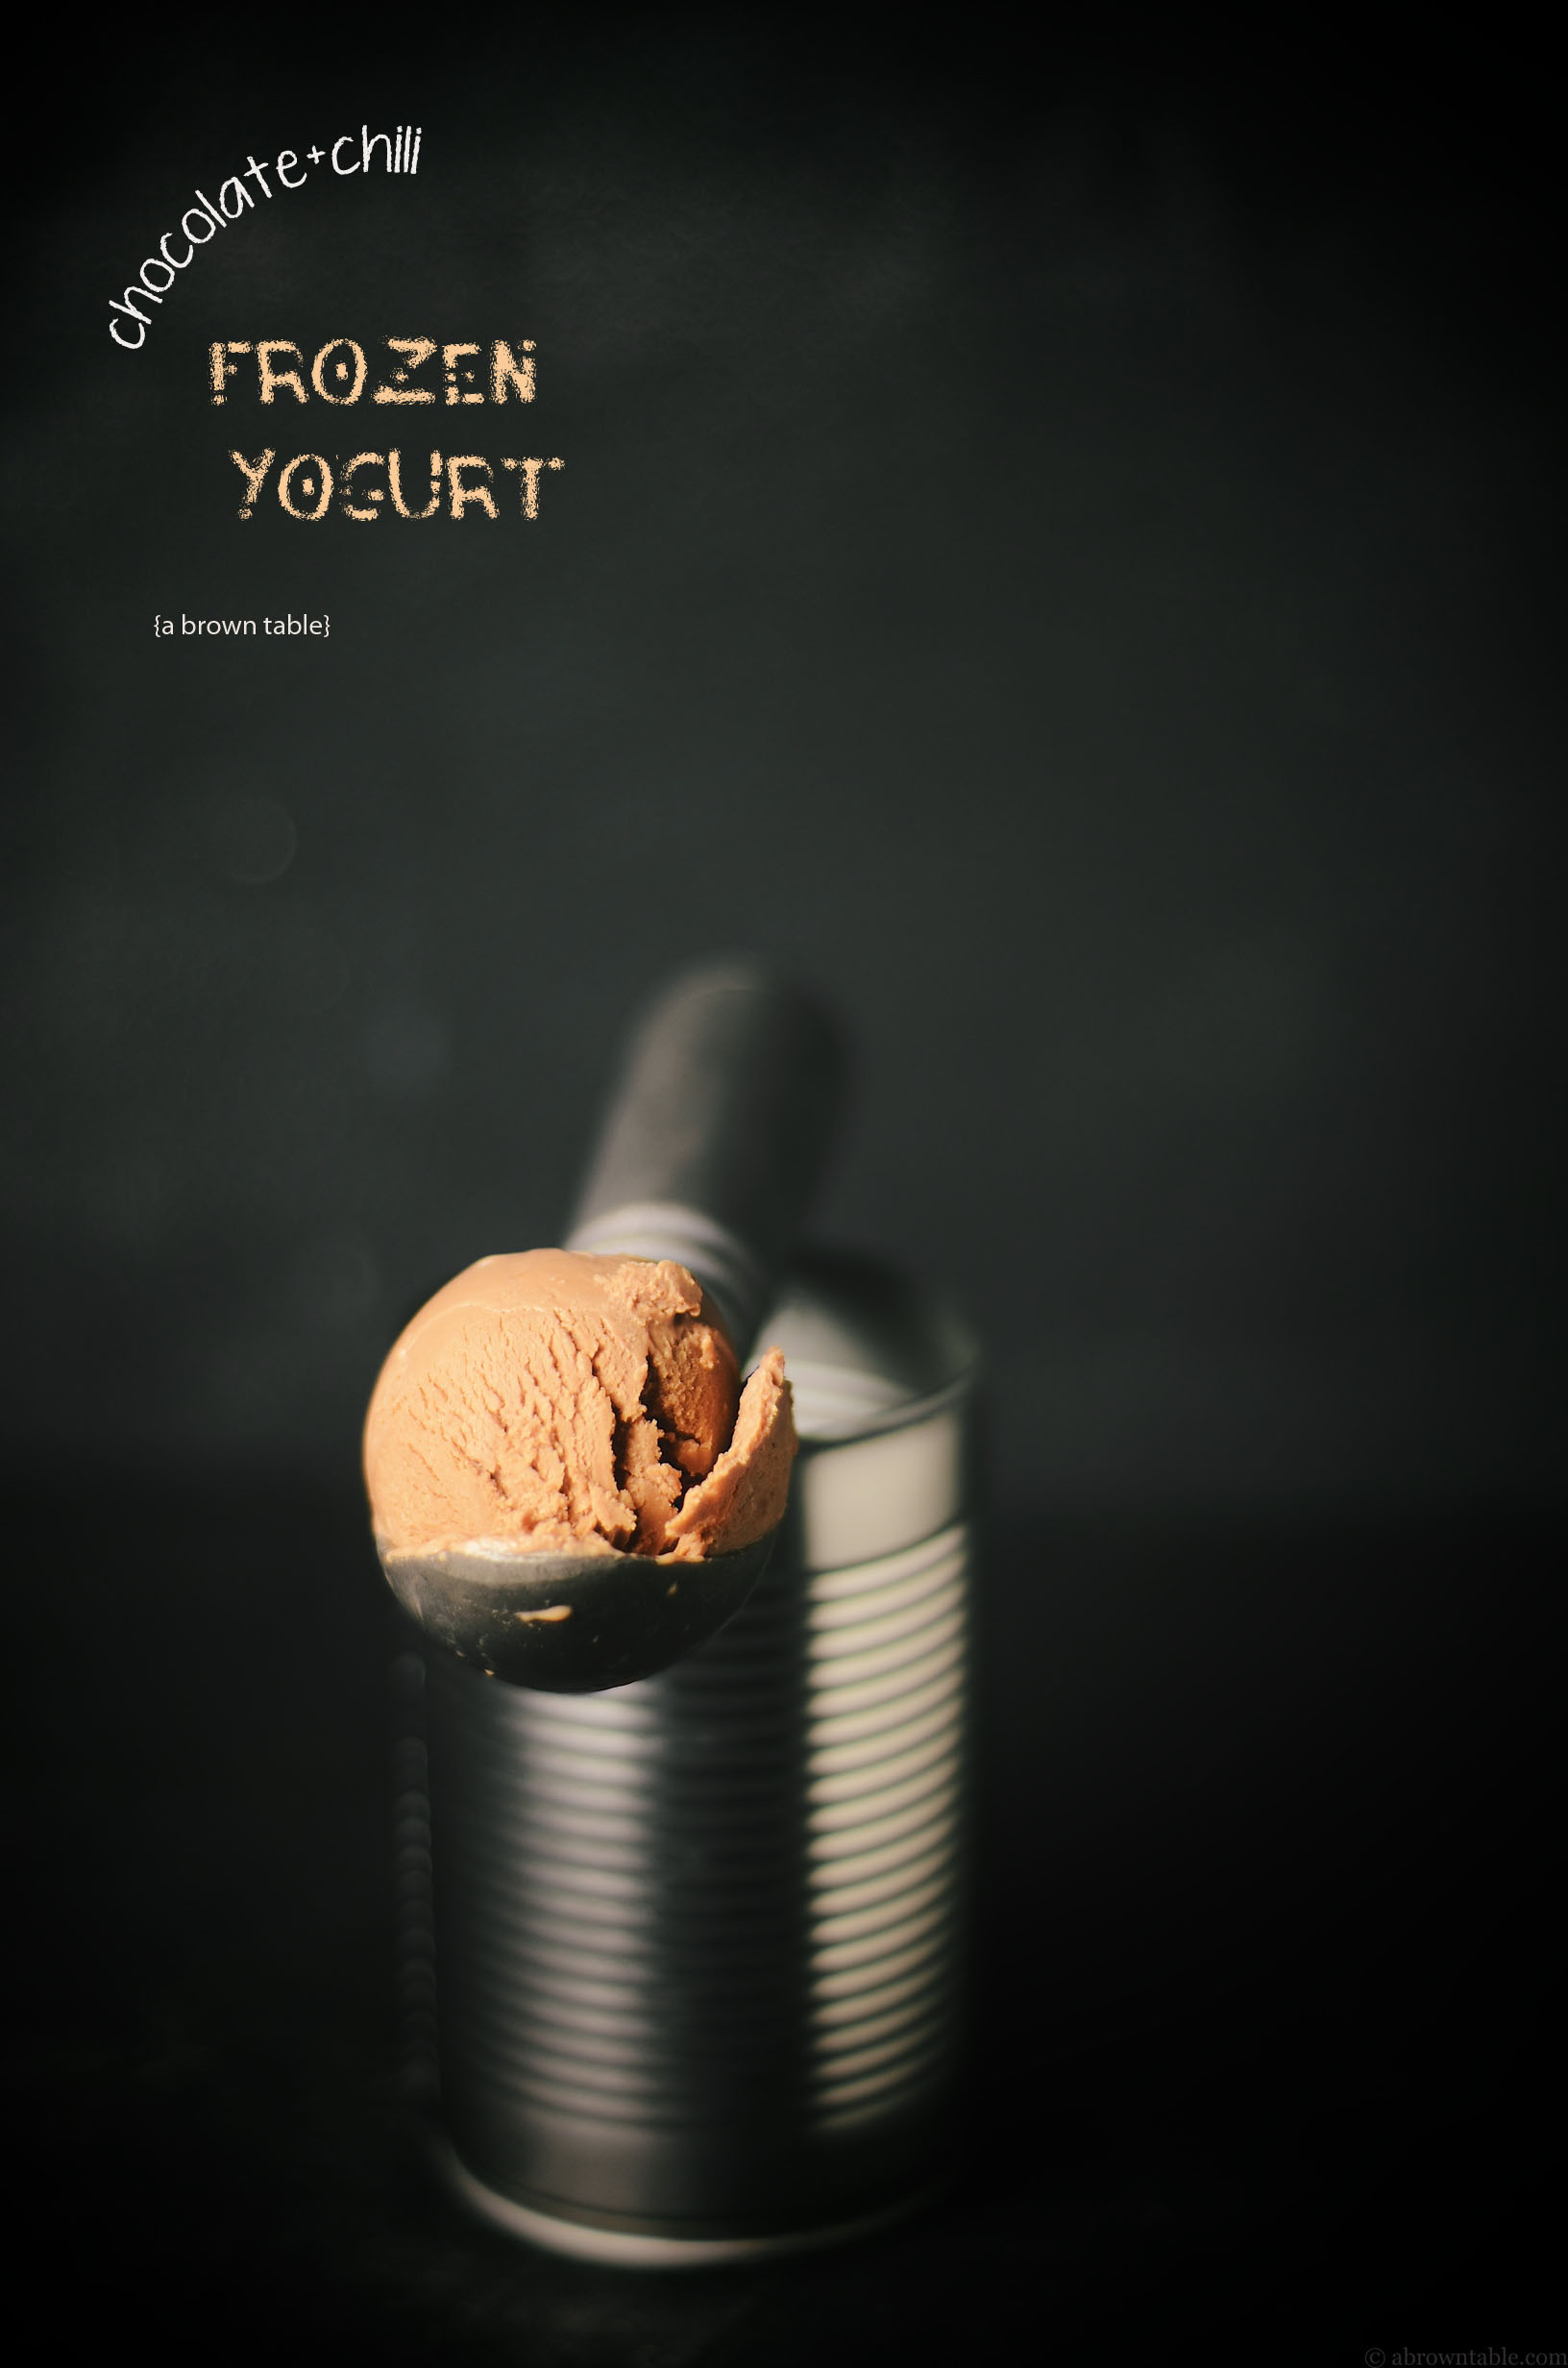 frozen chili chocolate yogurt